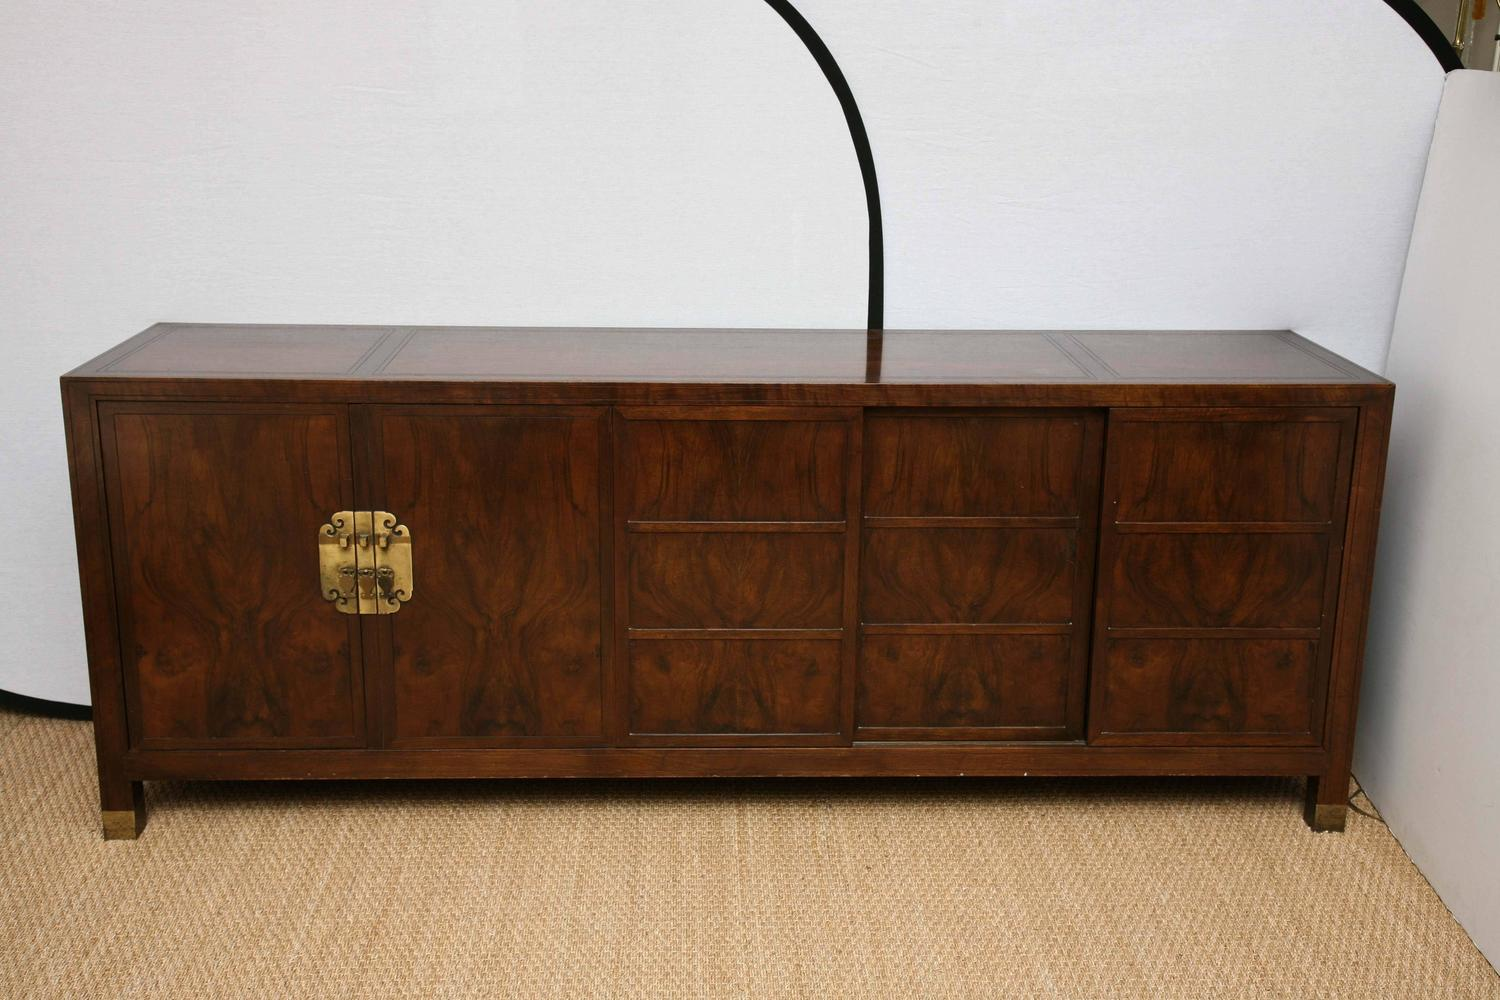 Far East Collection Credenza By Baker Furniture For Sale At 1stdibs